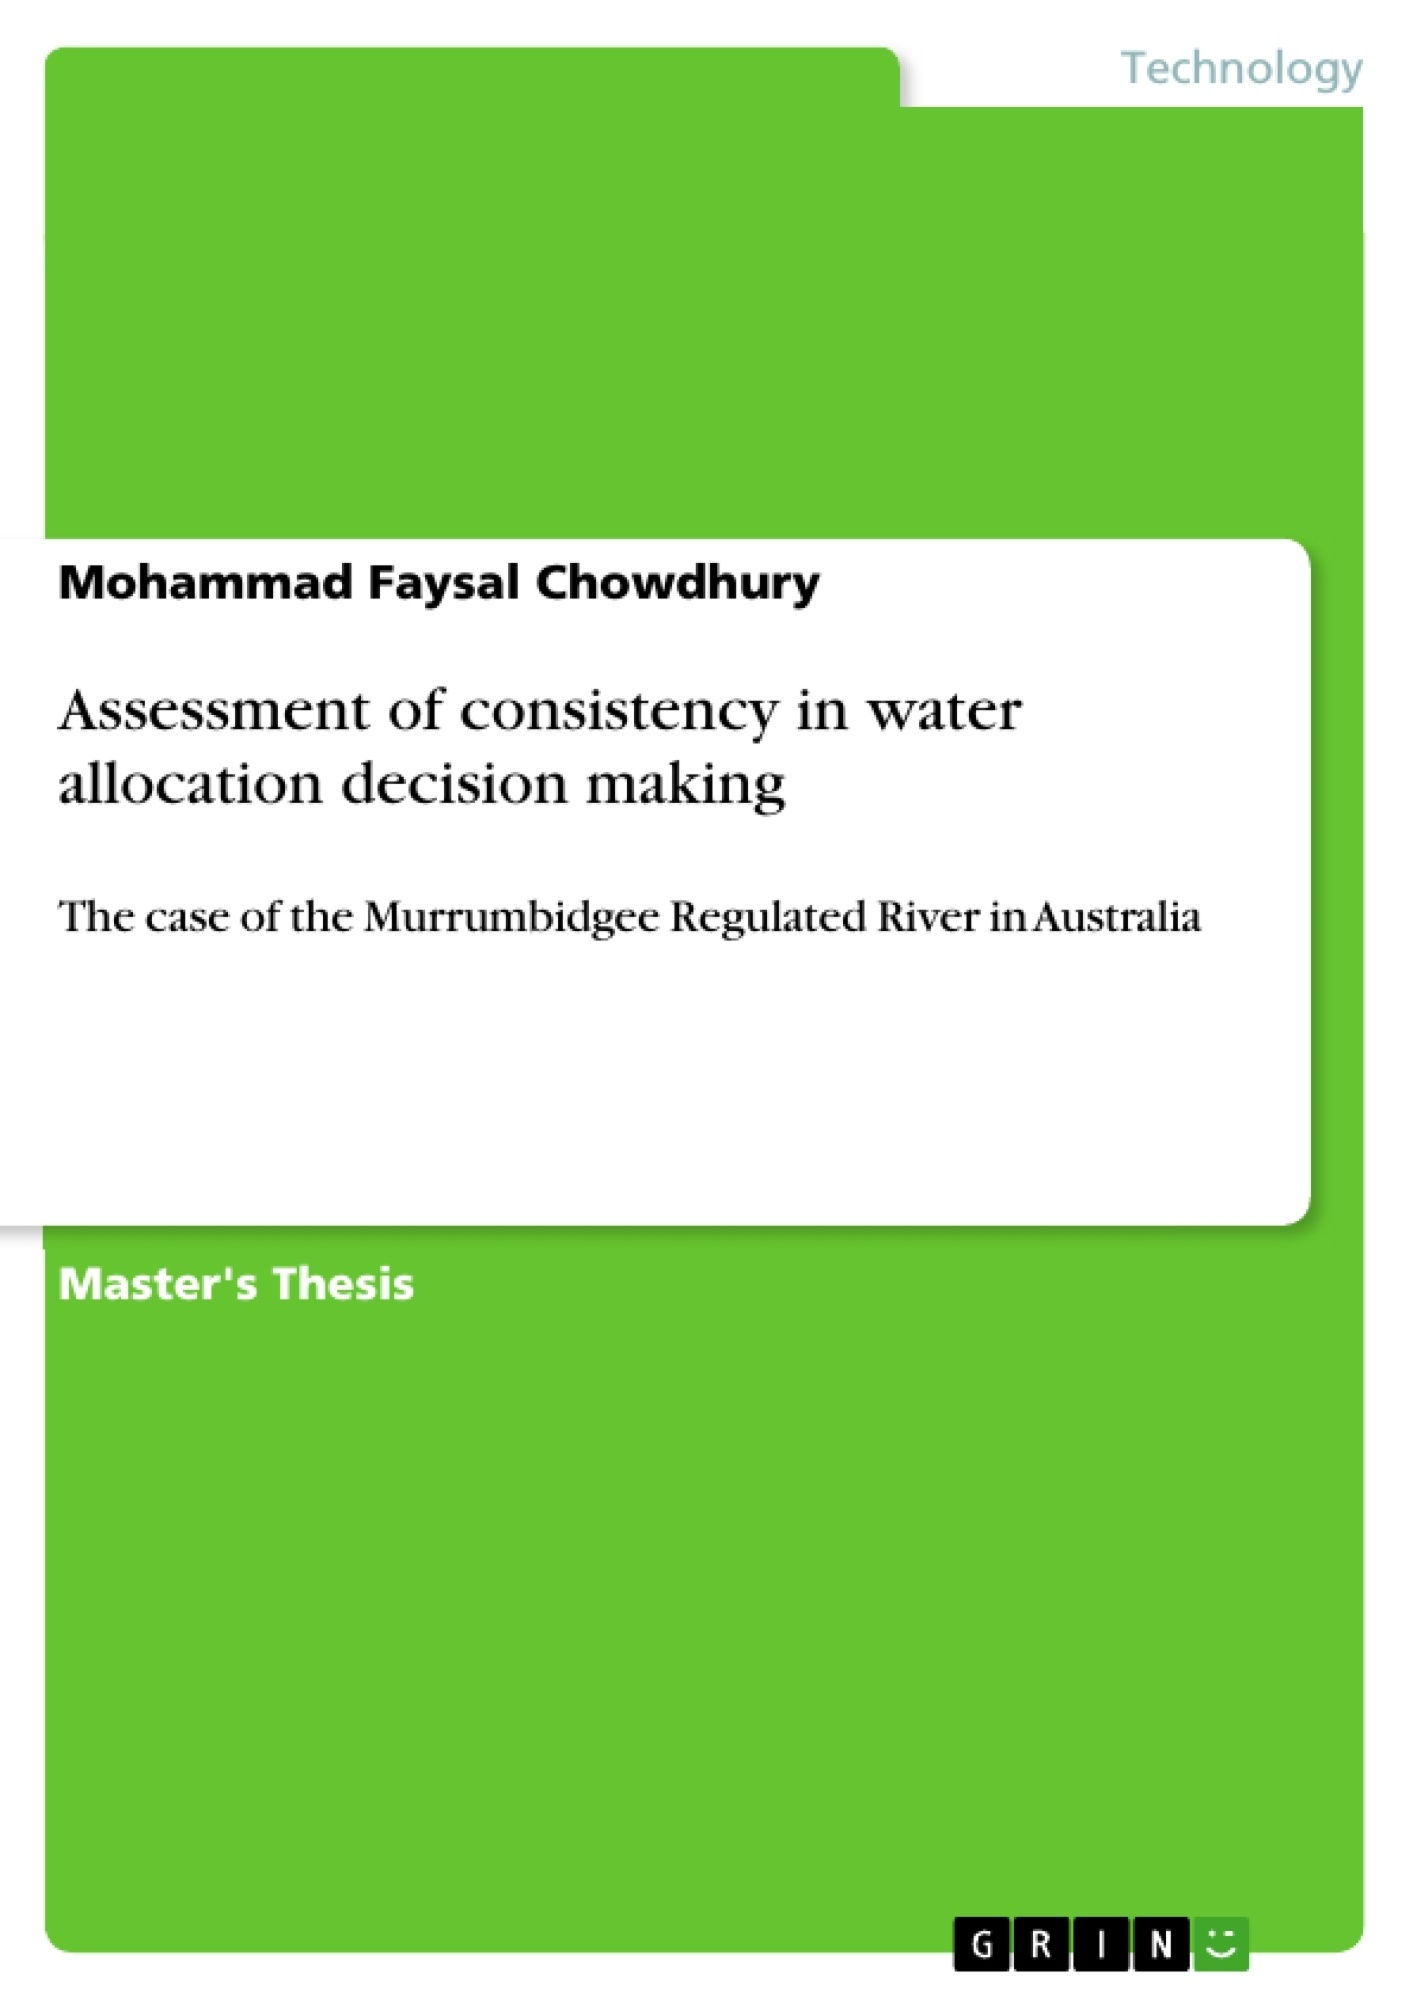 Title: Assessment of consistency in water allocation decision making